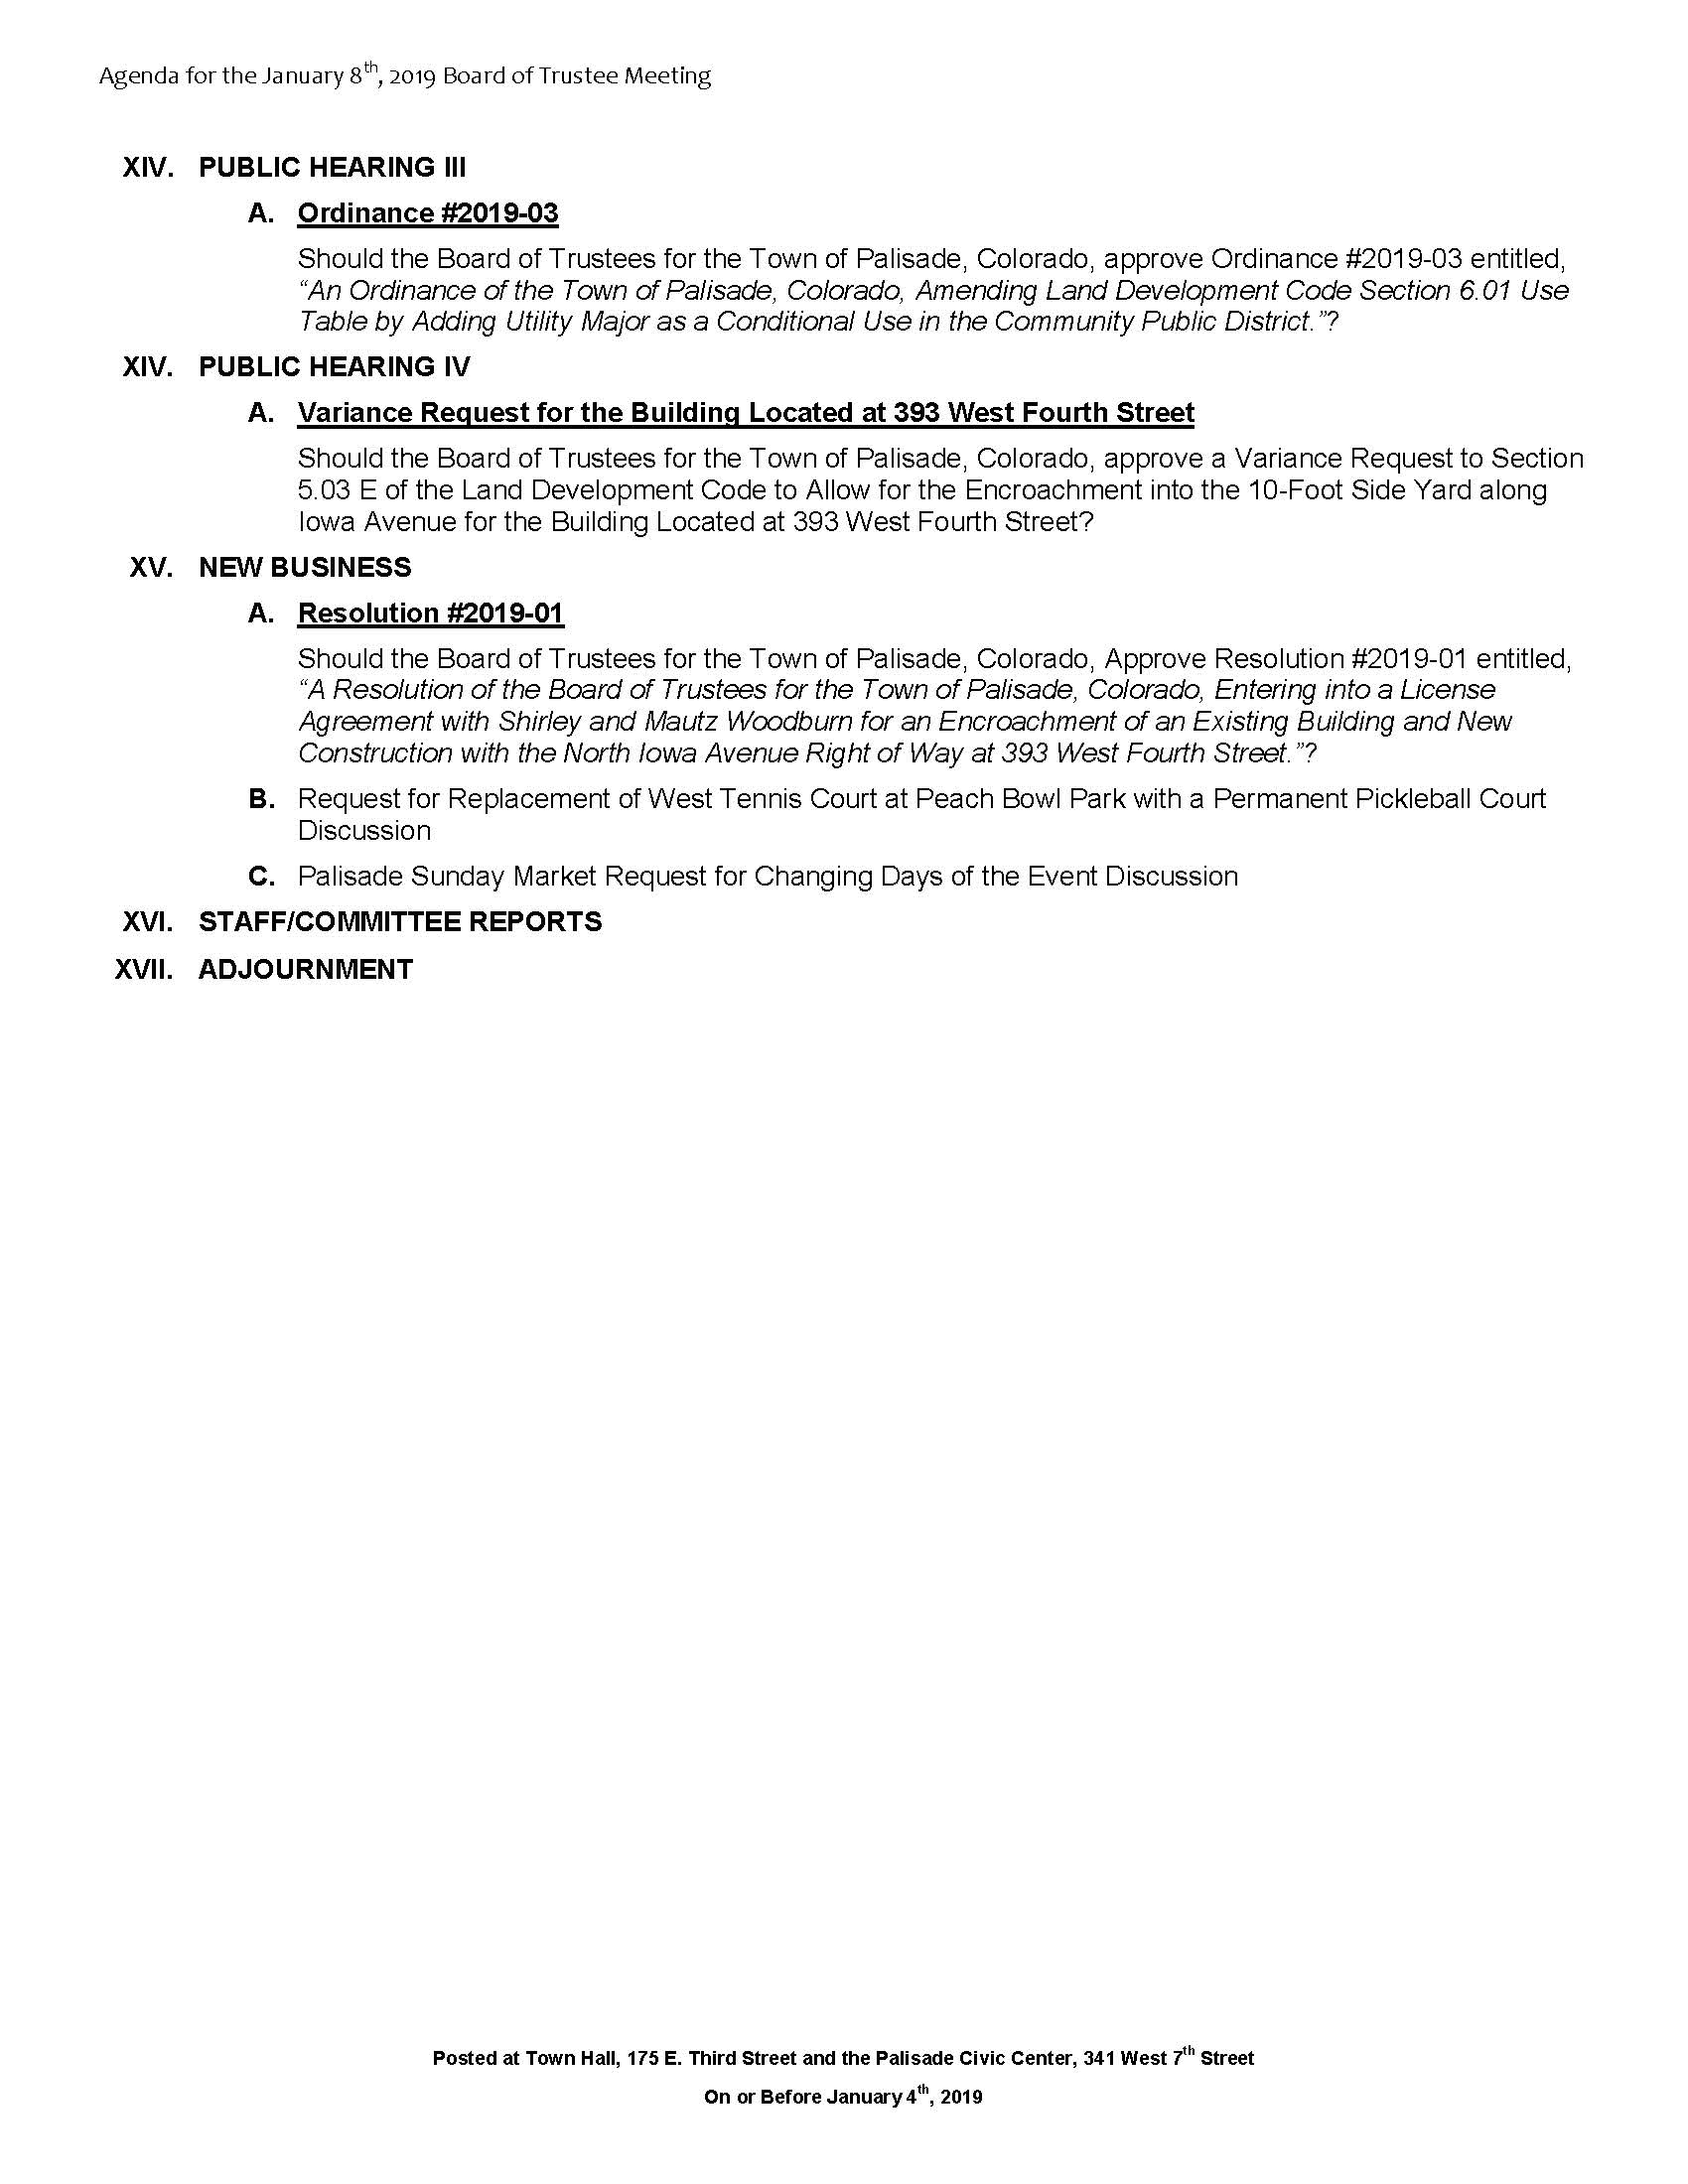 January 8th 2019 Board Meeting Agenda Page 2